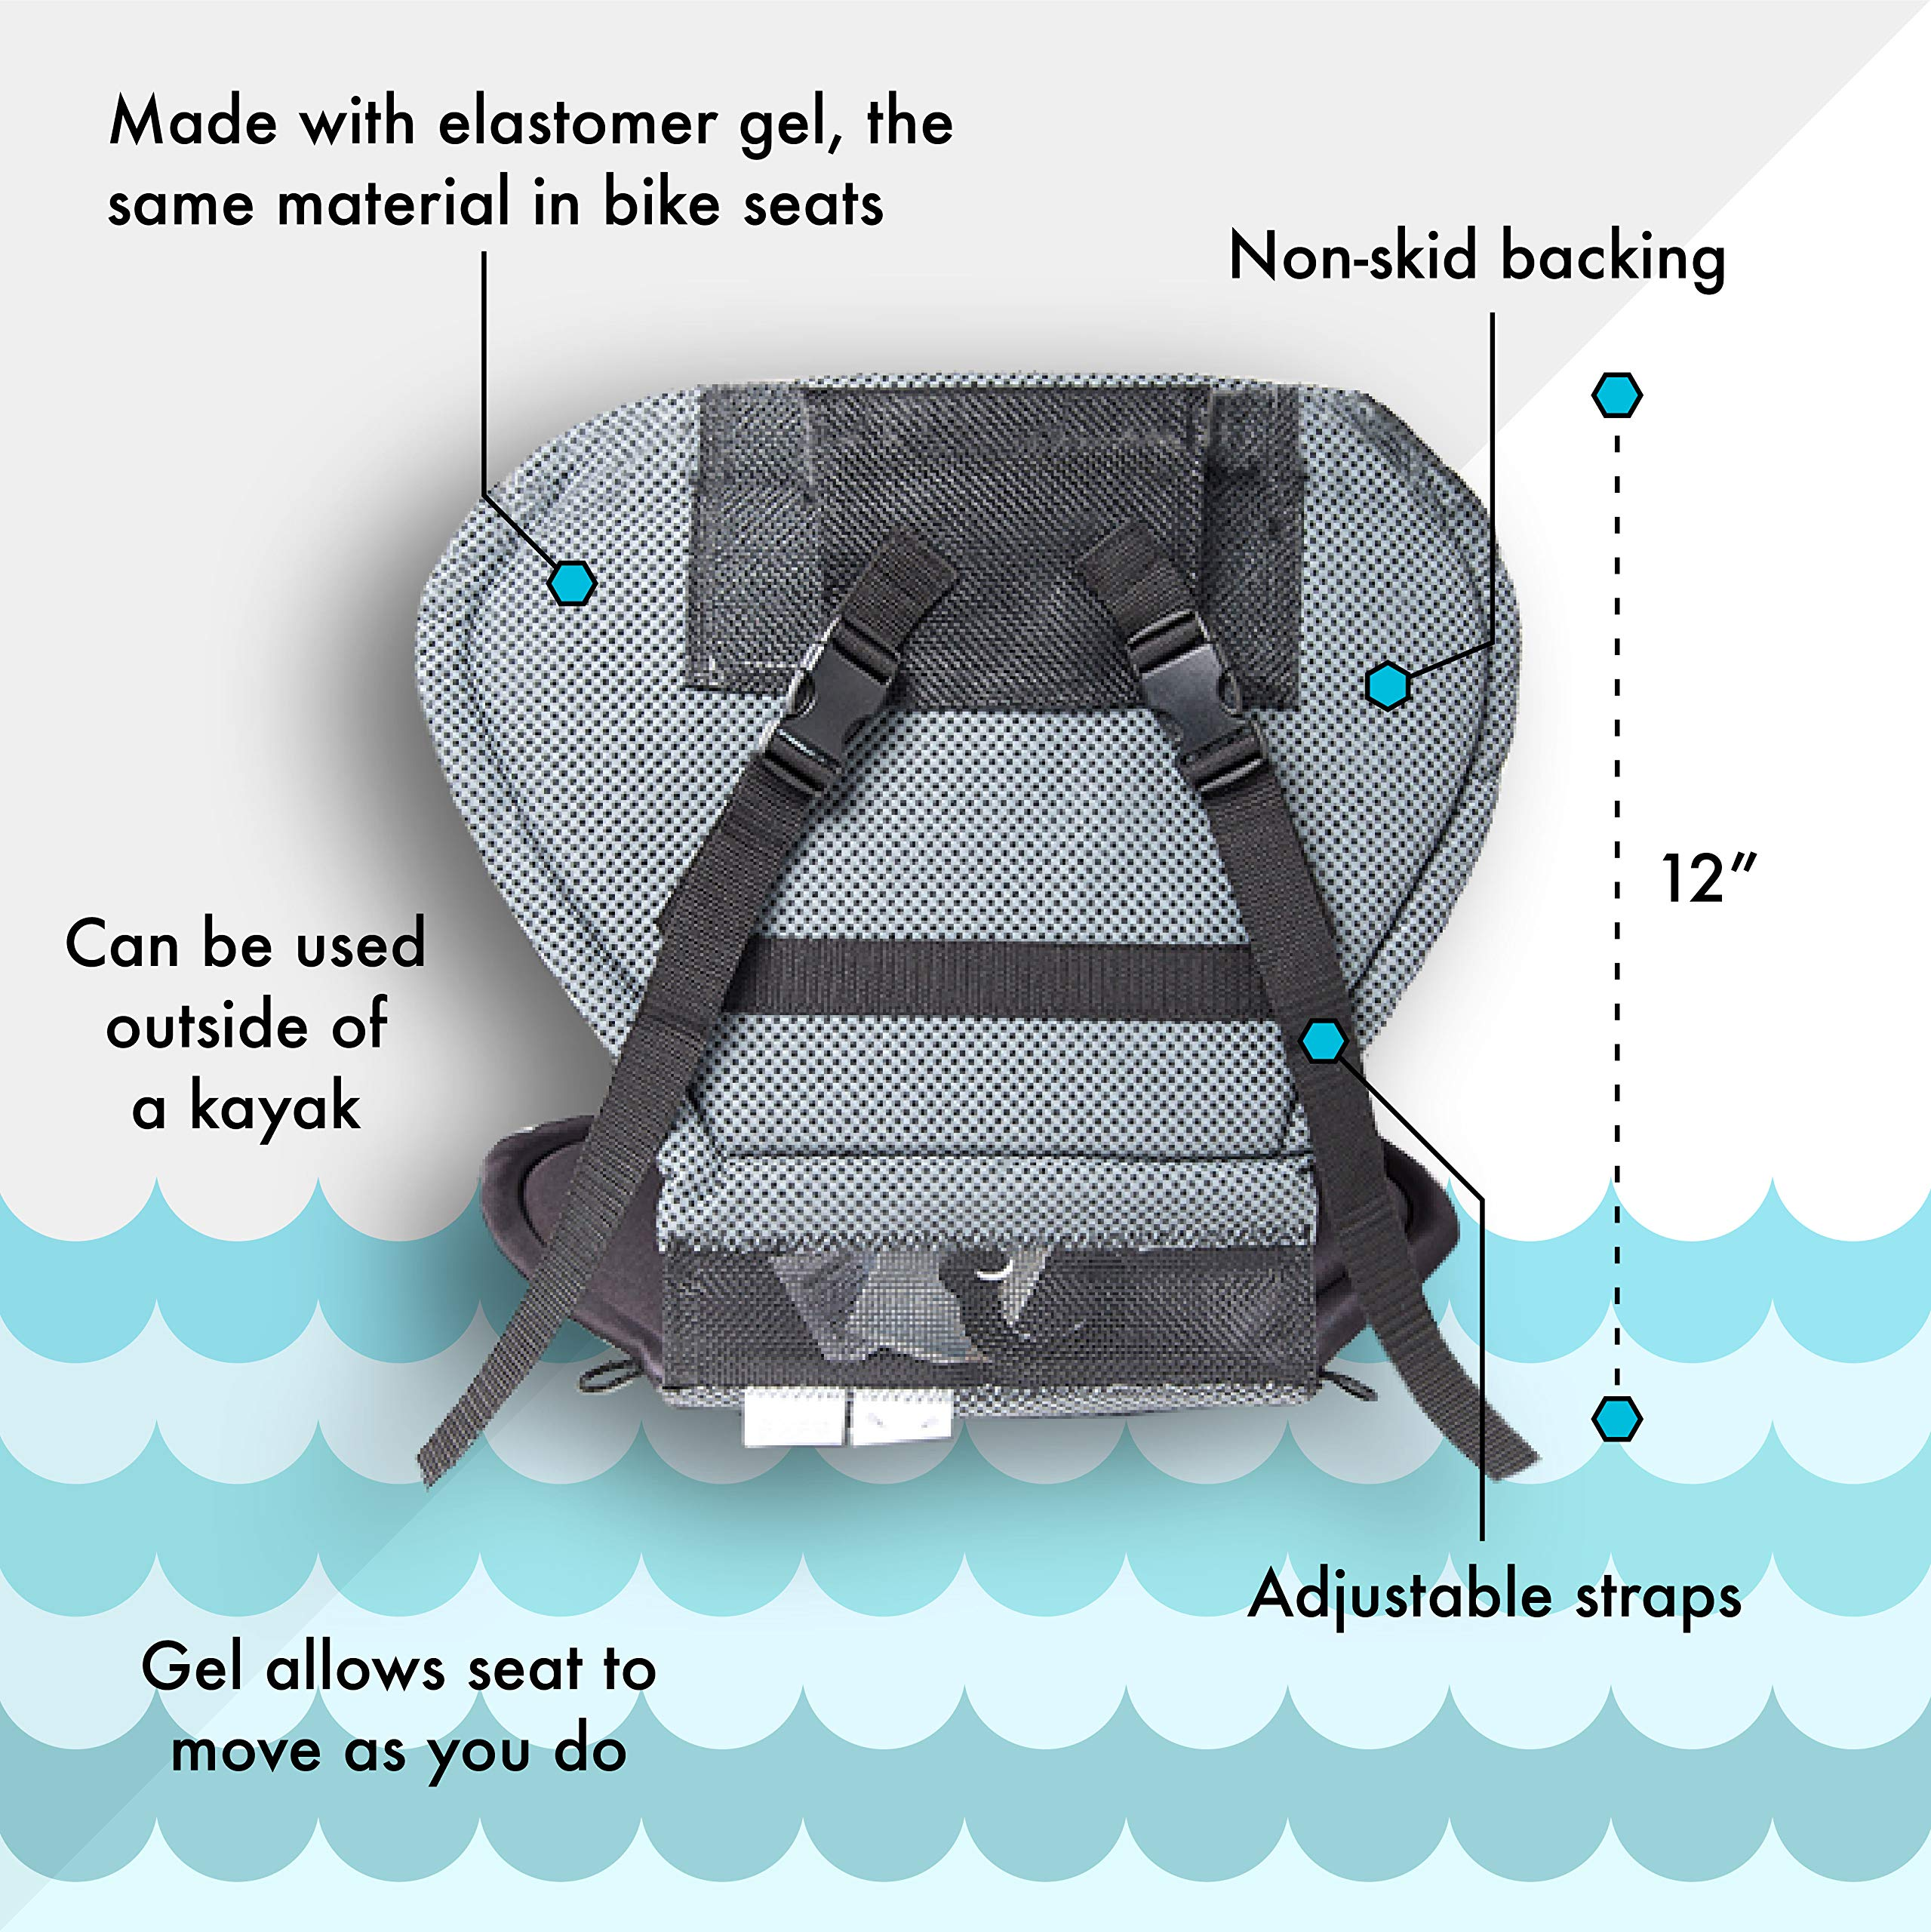 Yakpads Cushioned Seat Pad Gel Seat Pad For Kayaks Portable Seat Cushion For Outdoor Watersports And Recreation Cascade Creek Highback